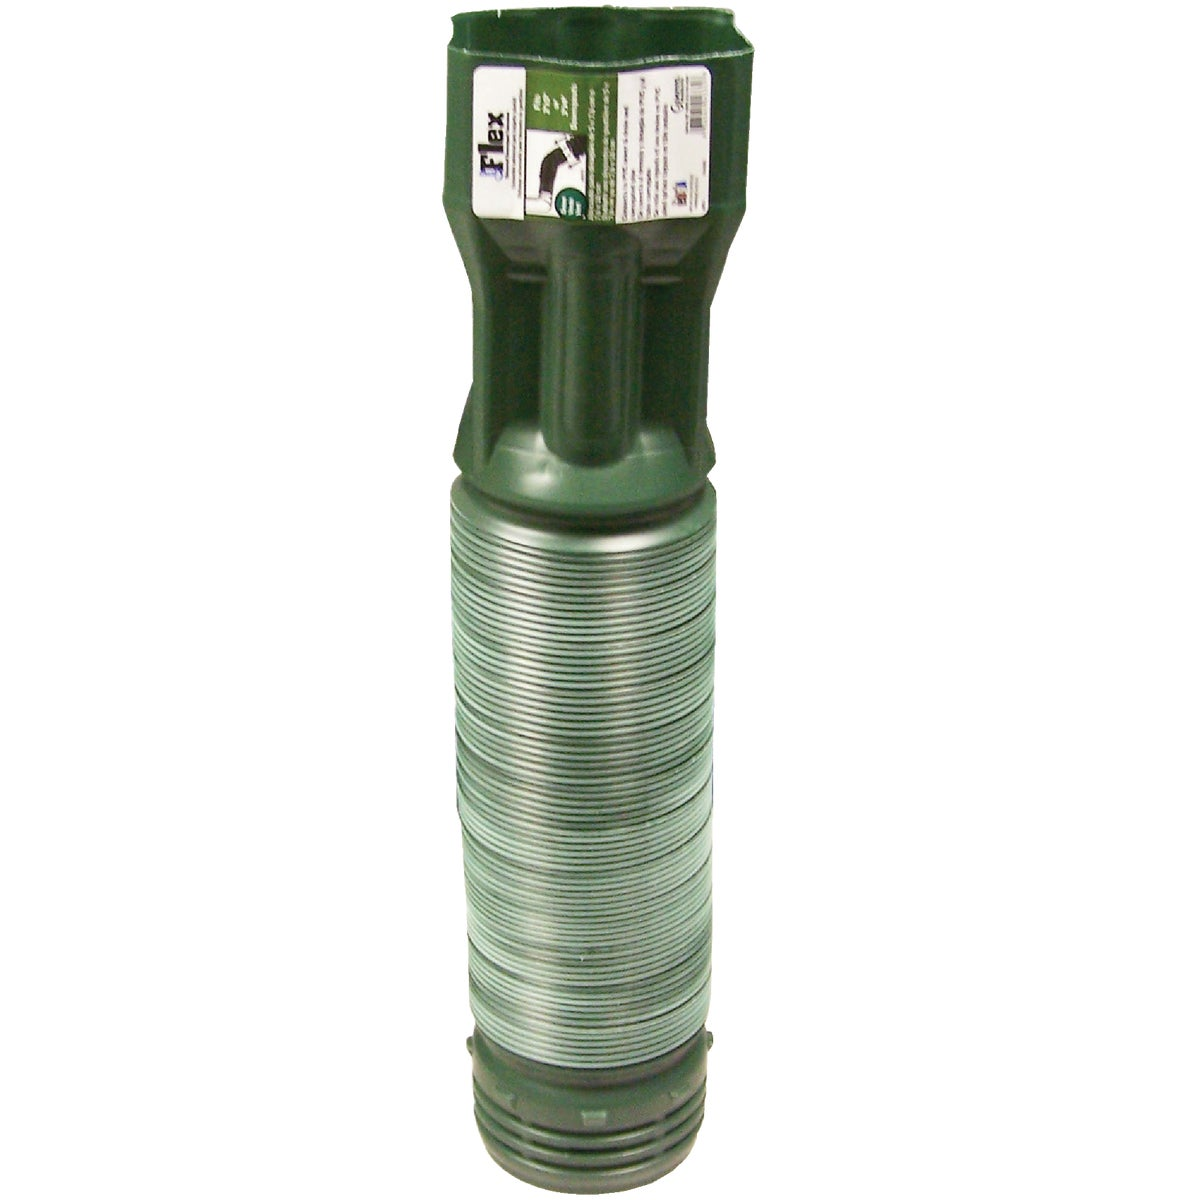 GRN DOWNSPOUT EXTENSION - AG575 by Genova Products